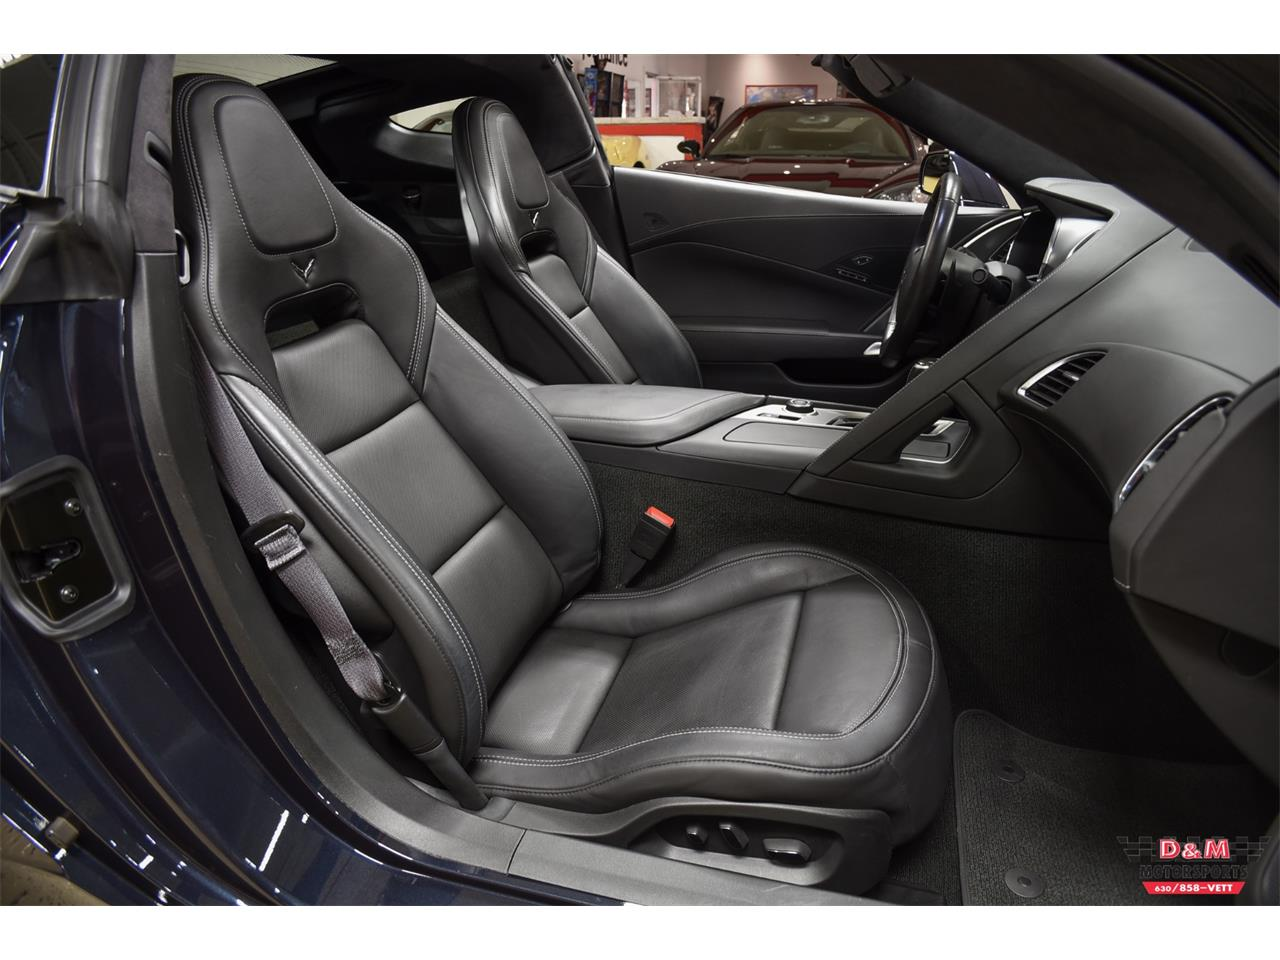 Large Picture of '15 Chevrolet Corvette - $45,995.00 Offered by D & M Motorsports - QGAK